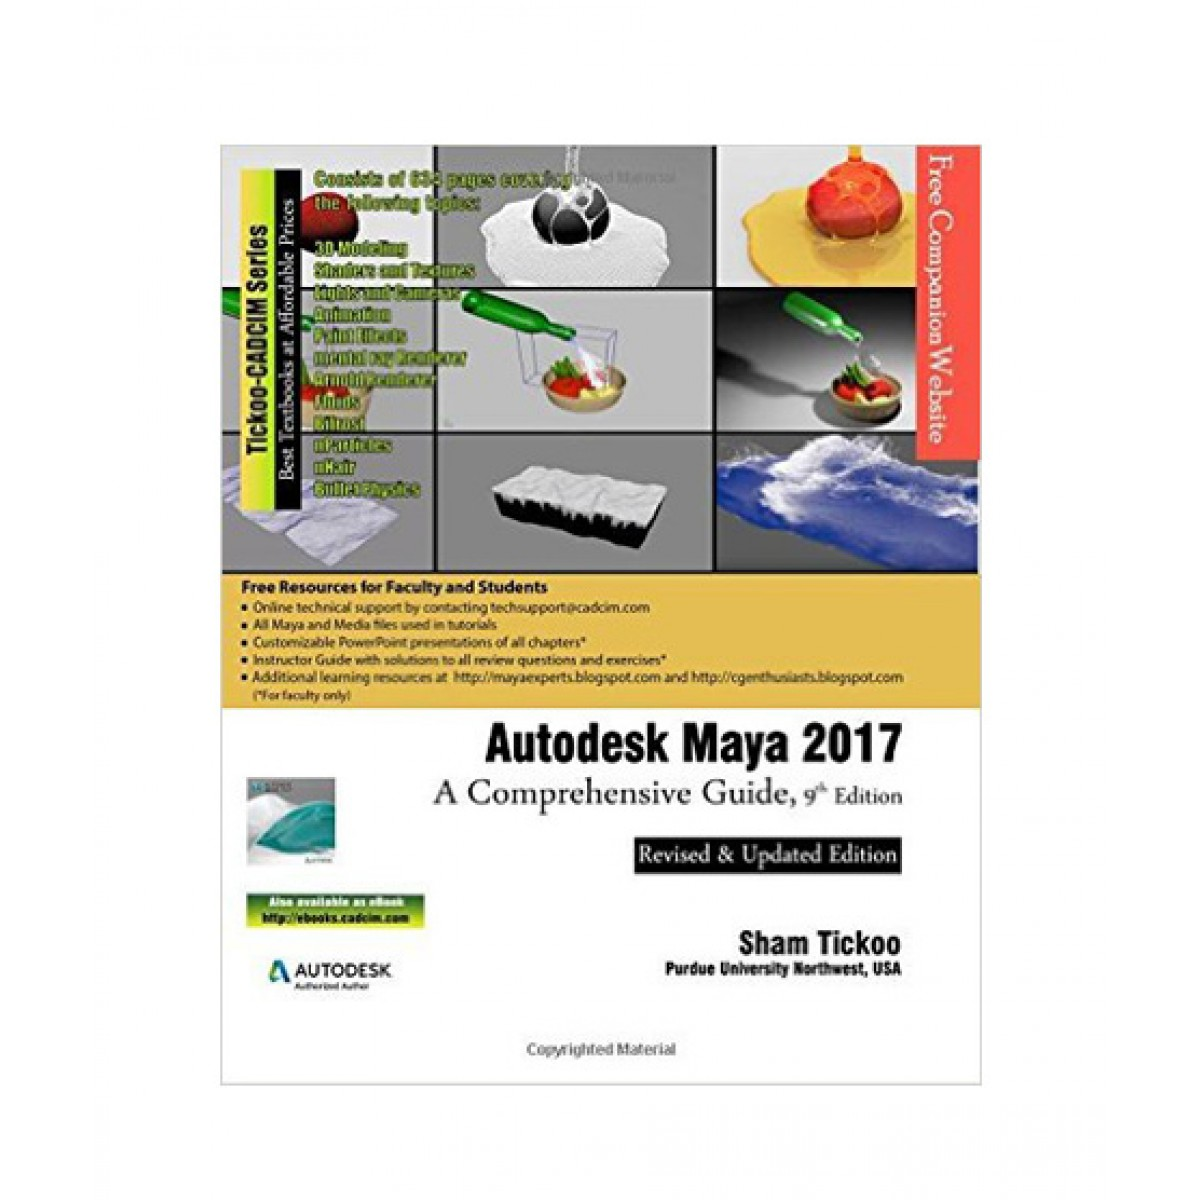 565c08d3a6 Reviews for Autodesk Maya 2017 A Comprehensive Guide Book Available ...